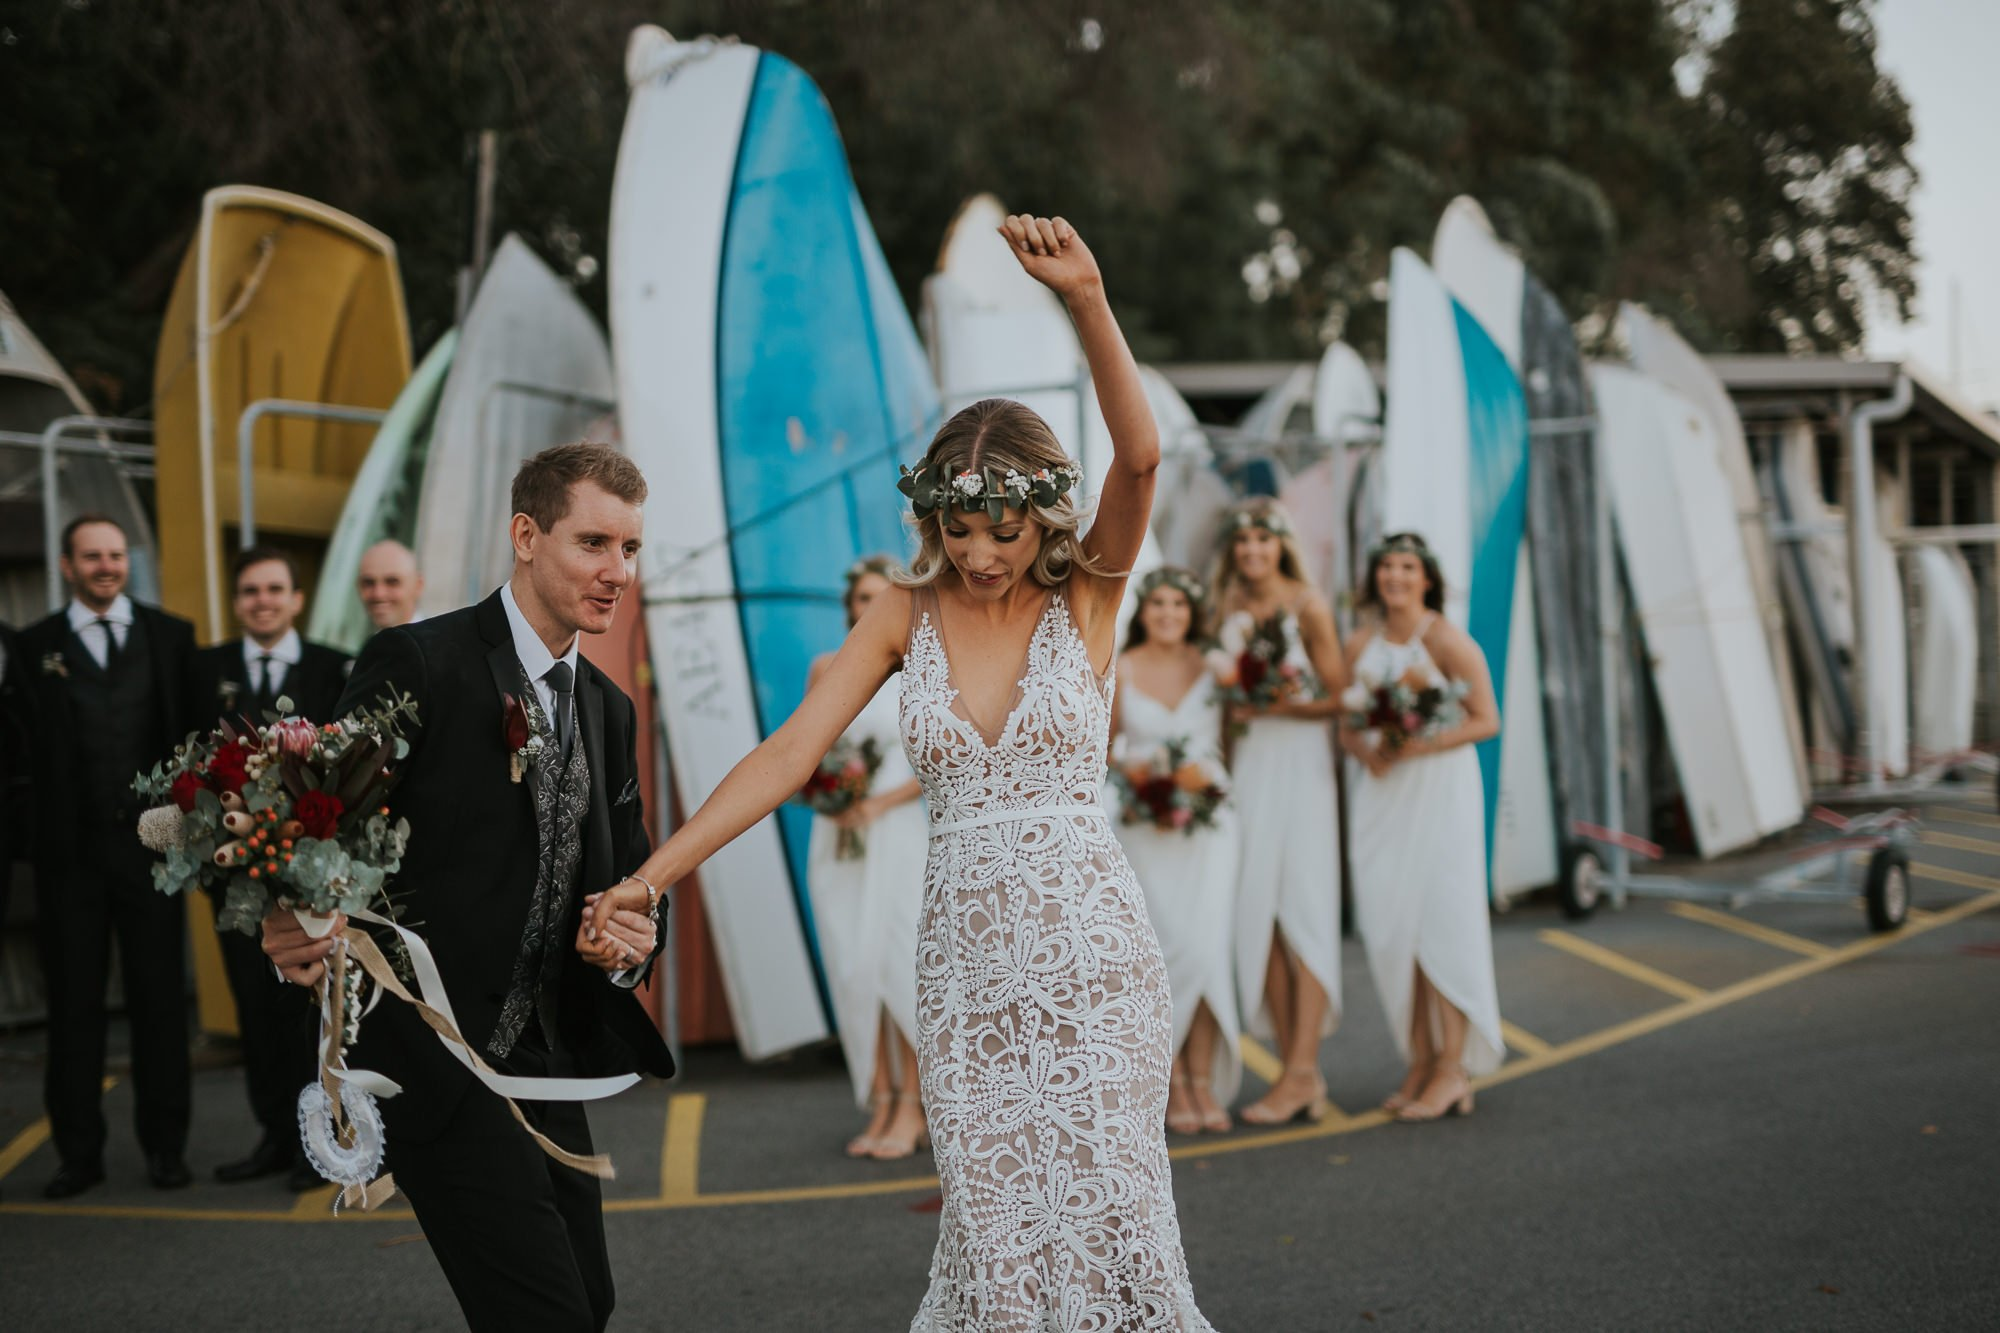 Perth Wedding Photos | Perth Wedding Photographer | Ebony Blush Photography | Zoe Theiadore Photographer | Wedding Photographer Perth & Melbourne